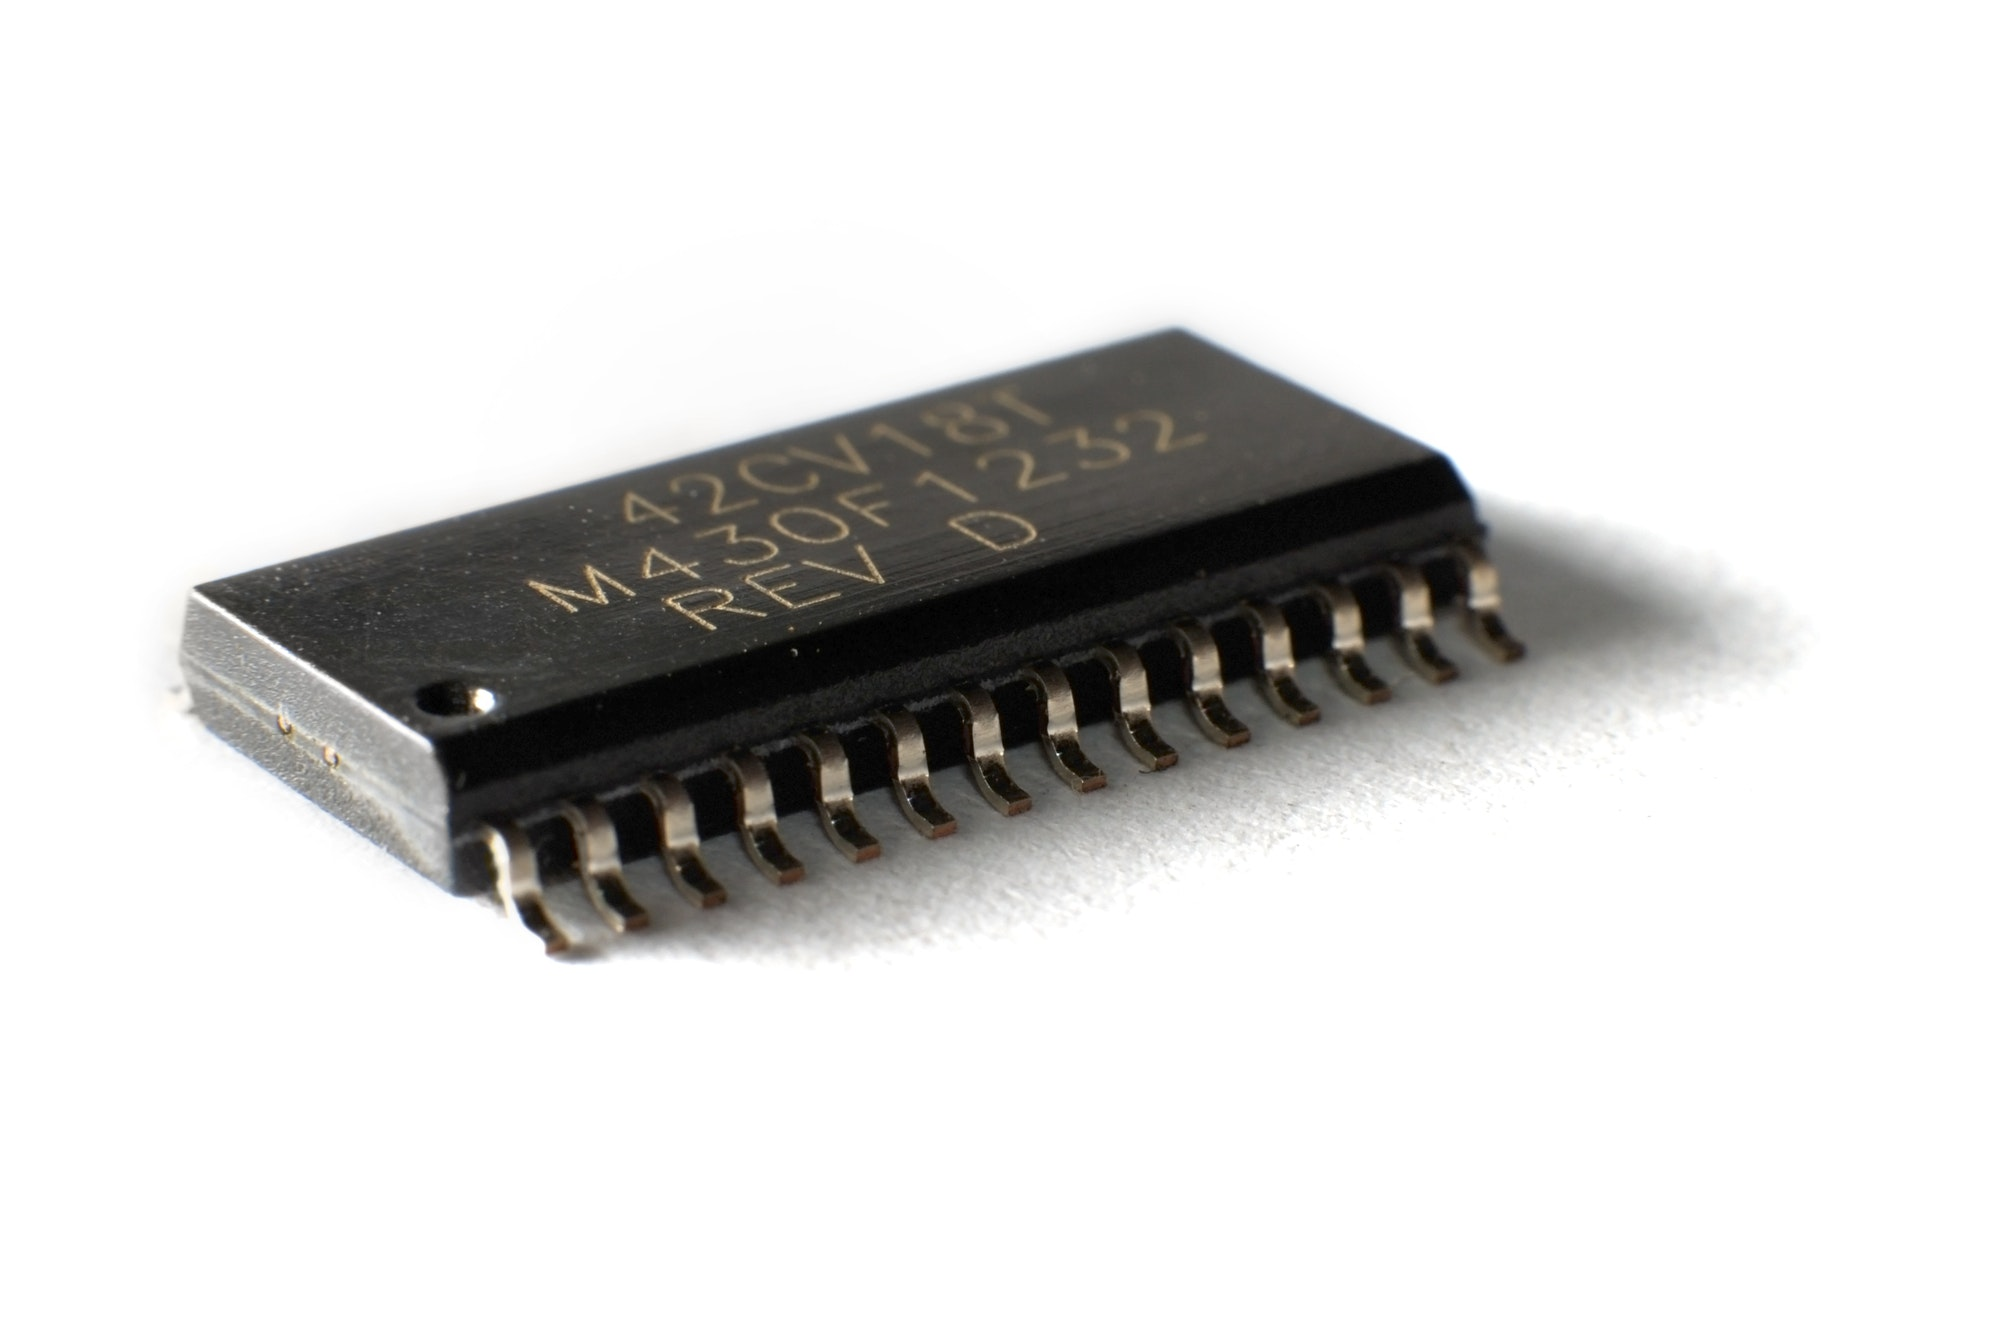 SMD electronic chips in SOIC case